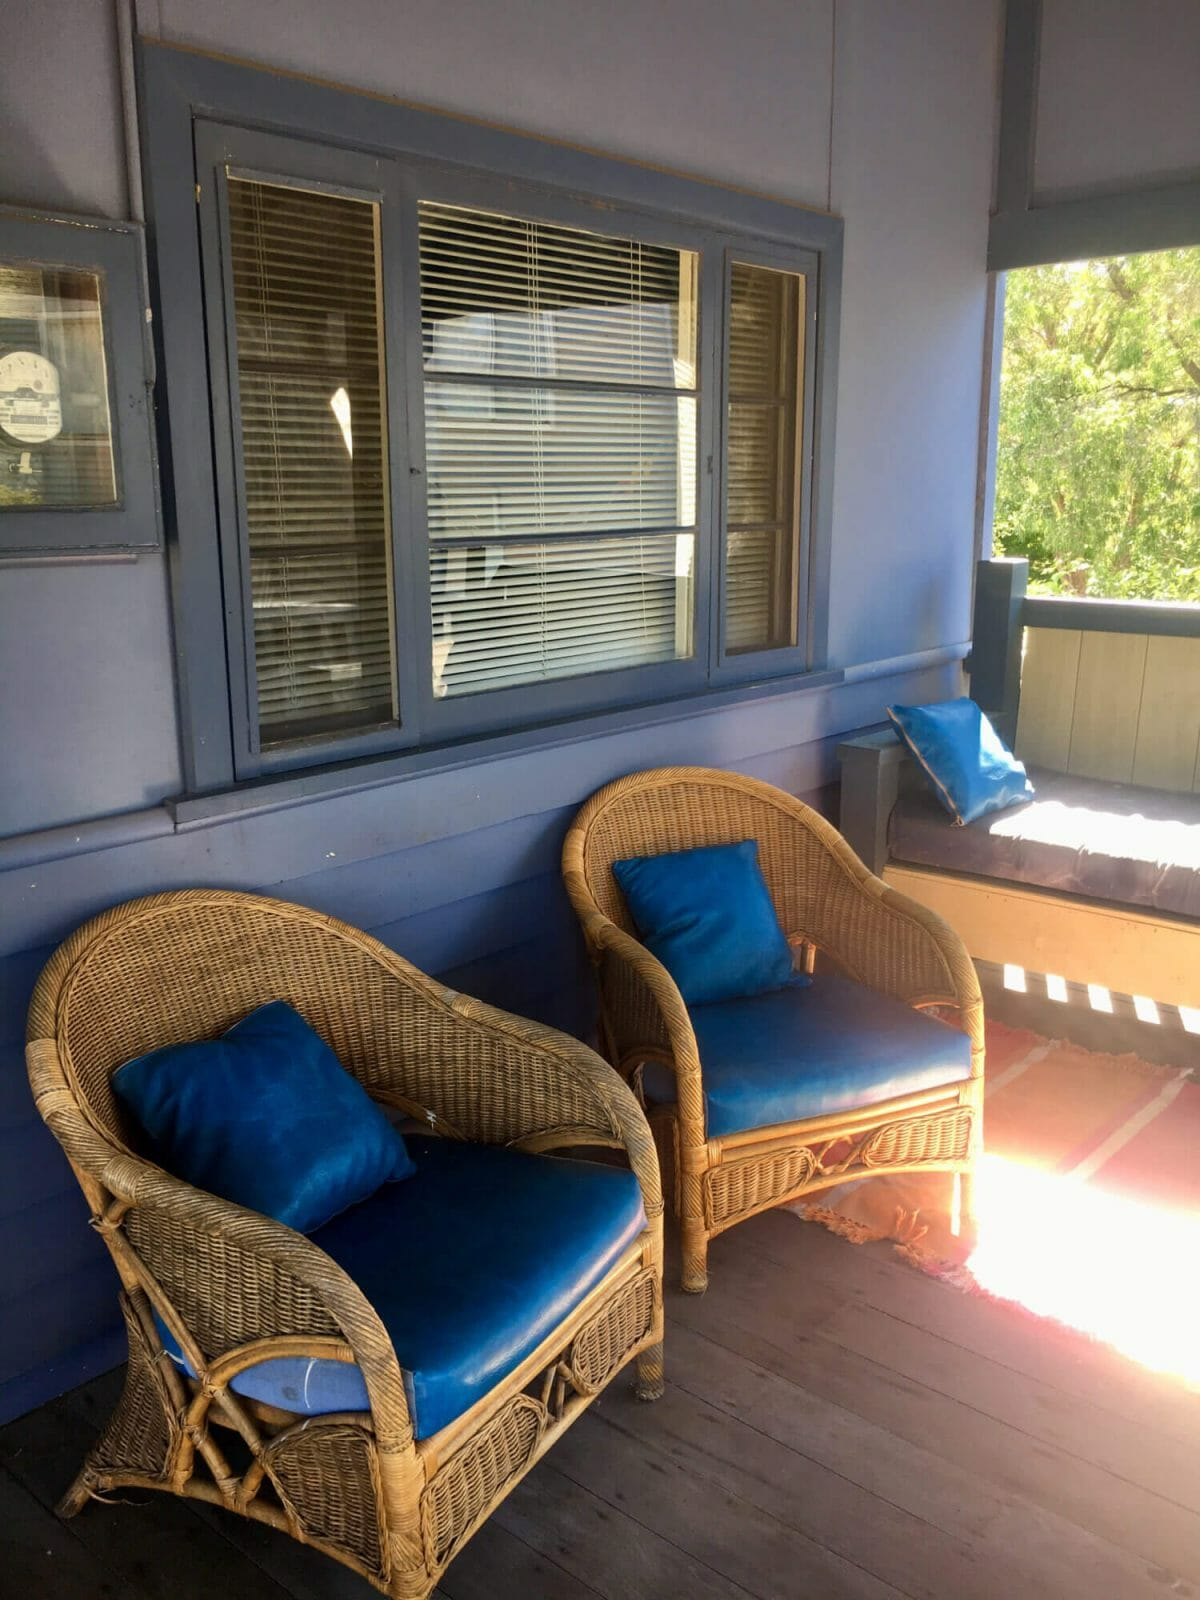 Weekender - Accommodation in Bremer Bay - 21 Barbara Street. Outdoor cane chairs and lounge area near BBQ